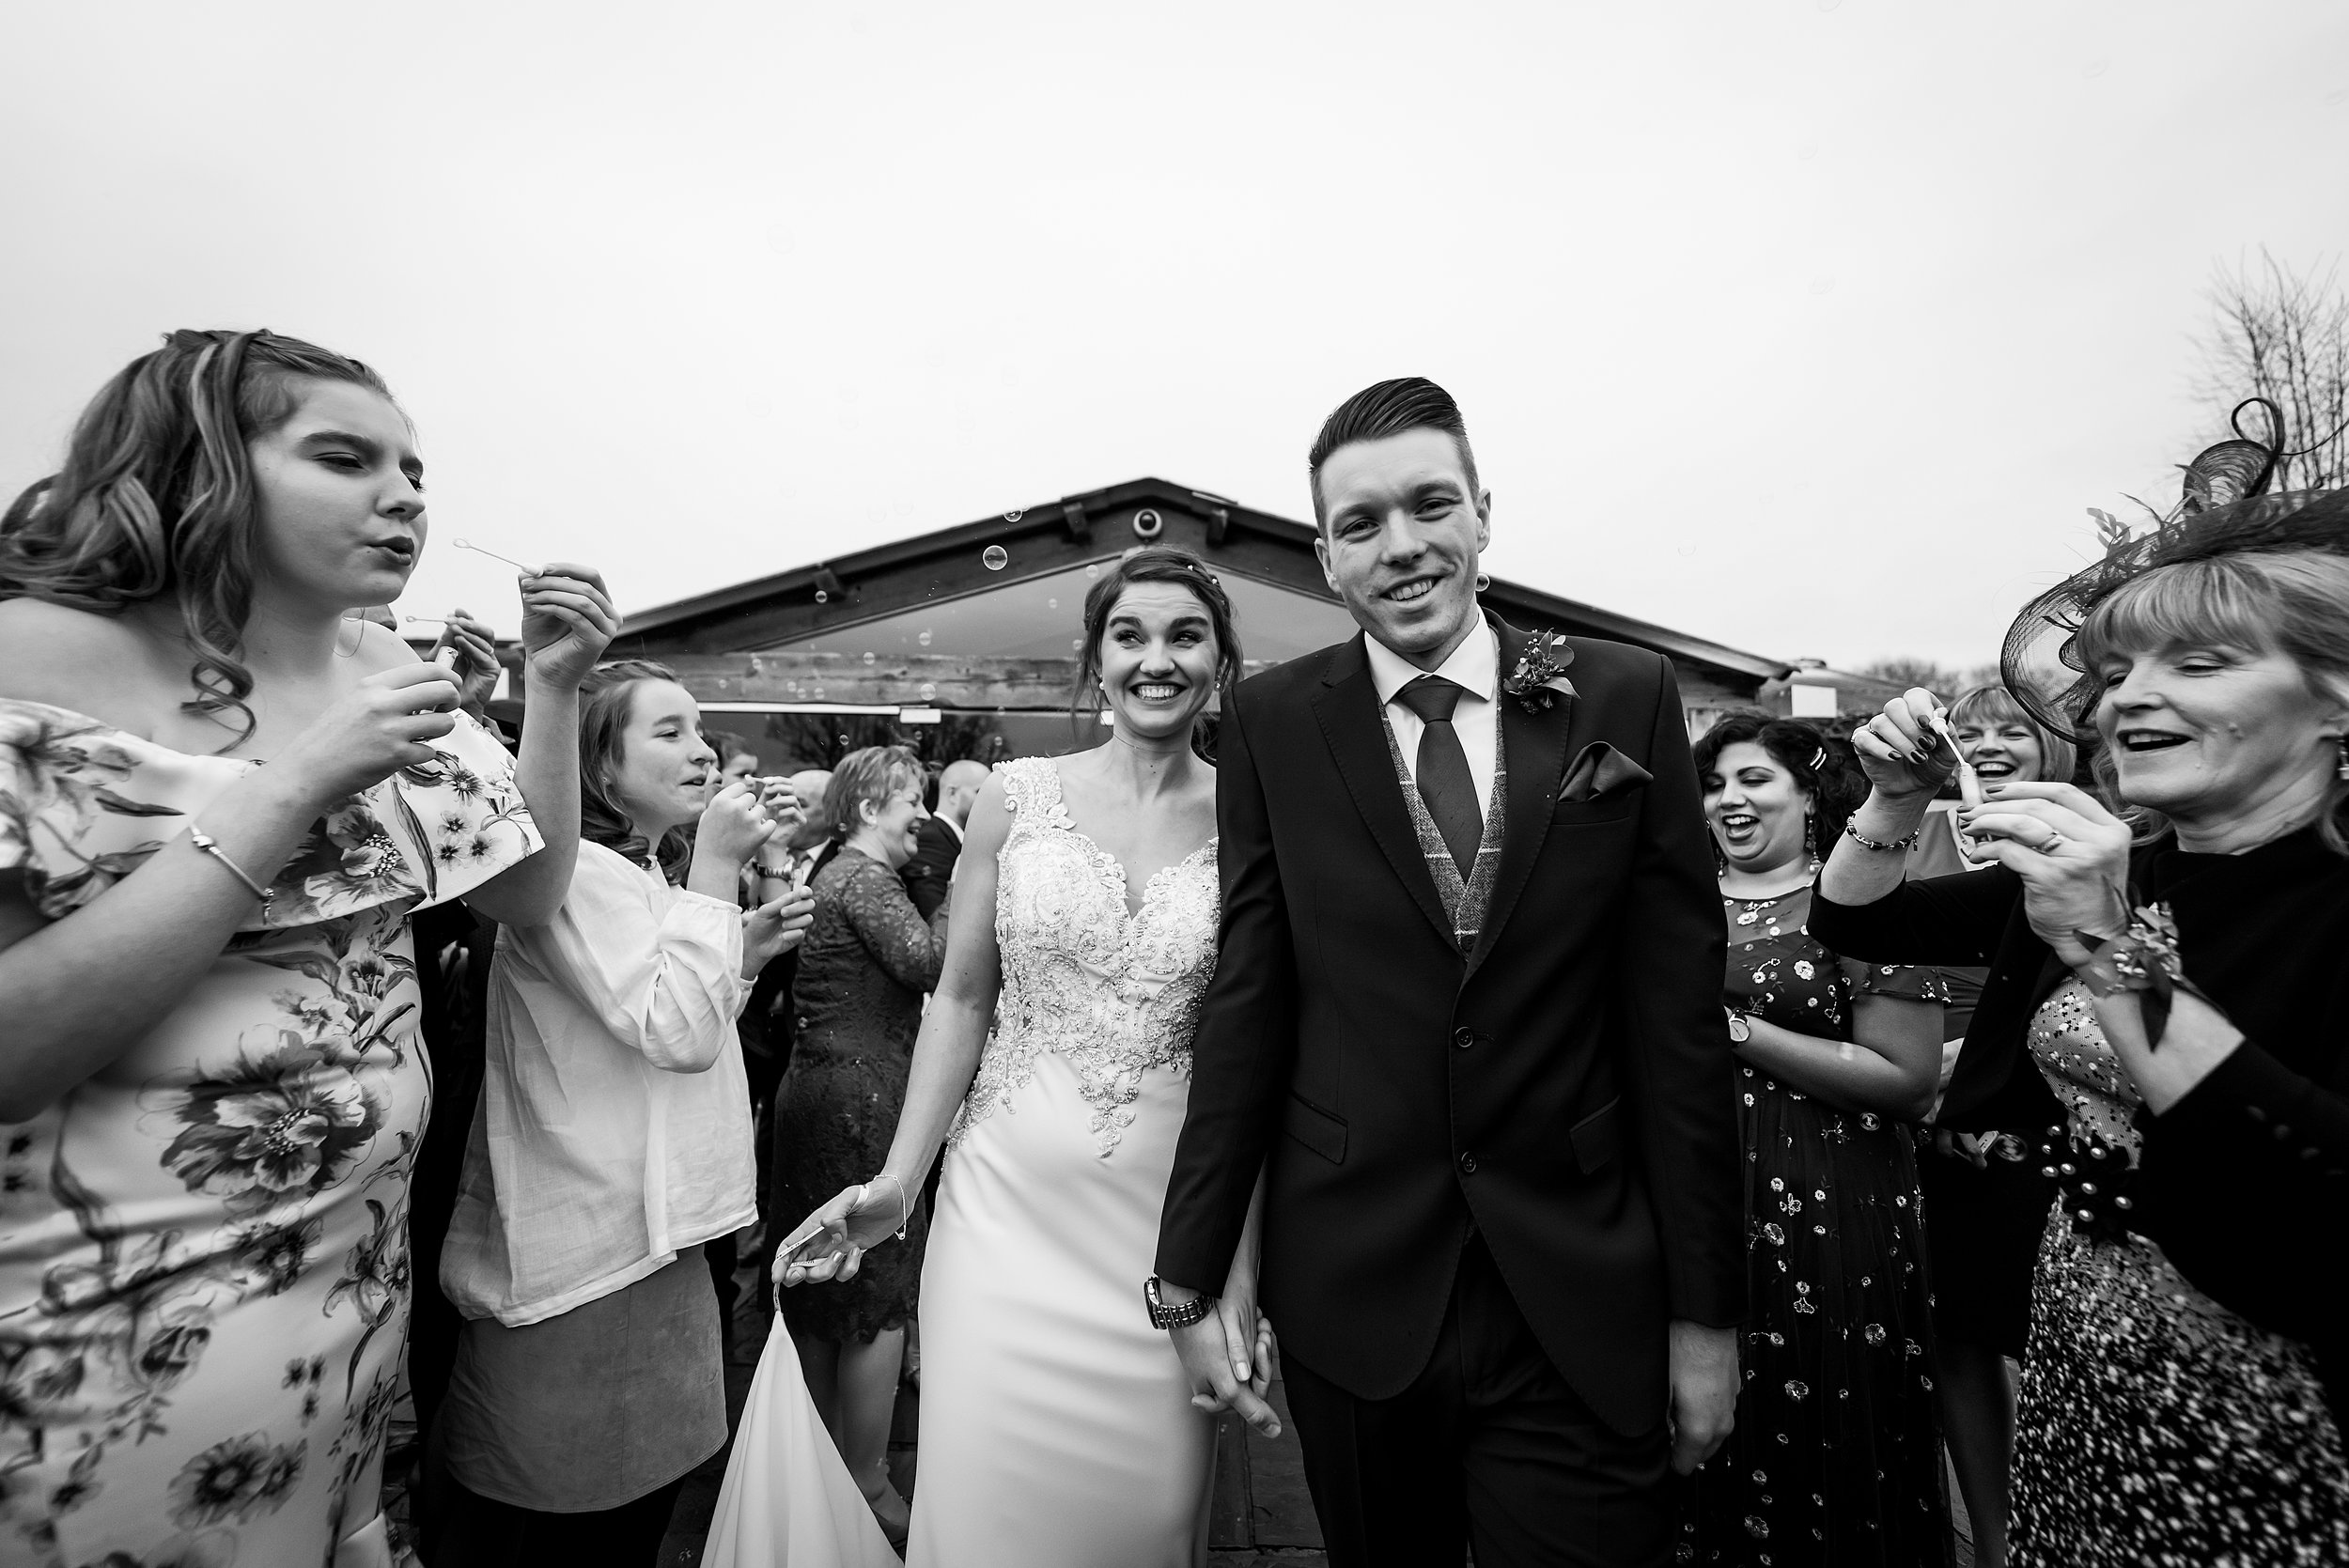 2019-01-19-Sophie-&-Chris-Wedding-245.jpg